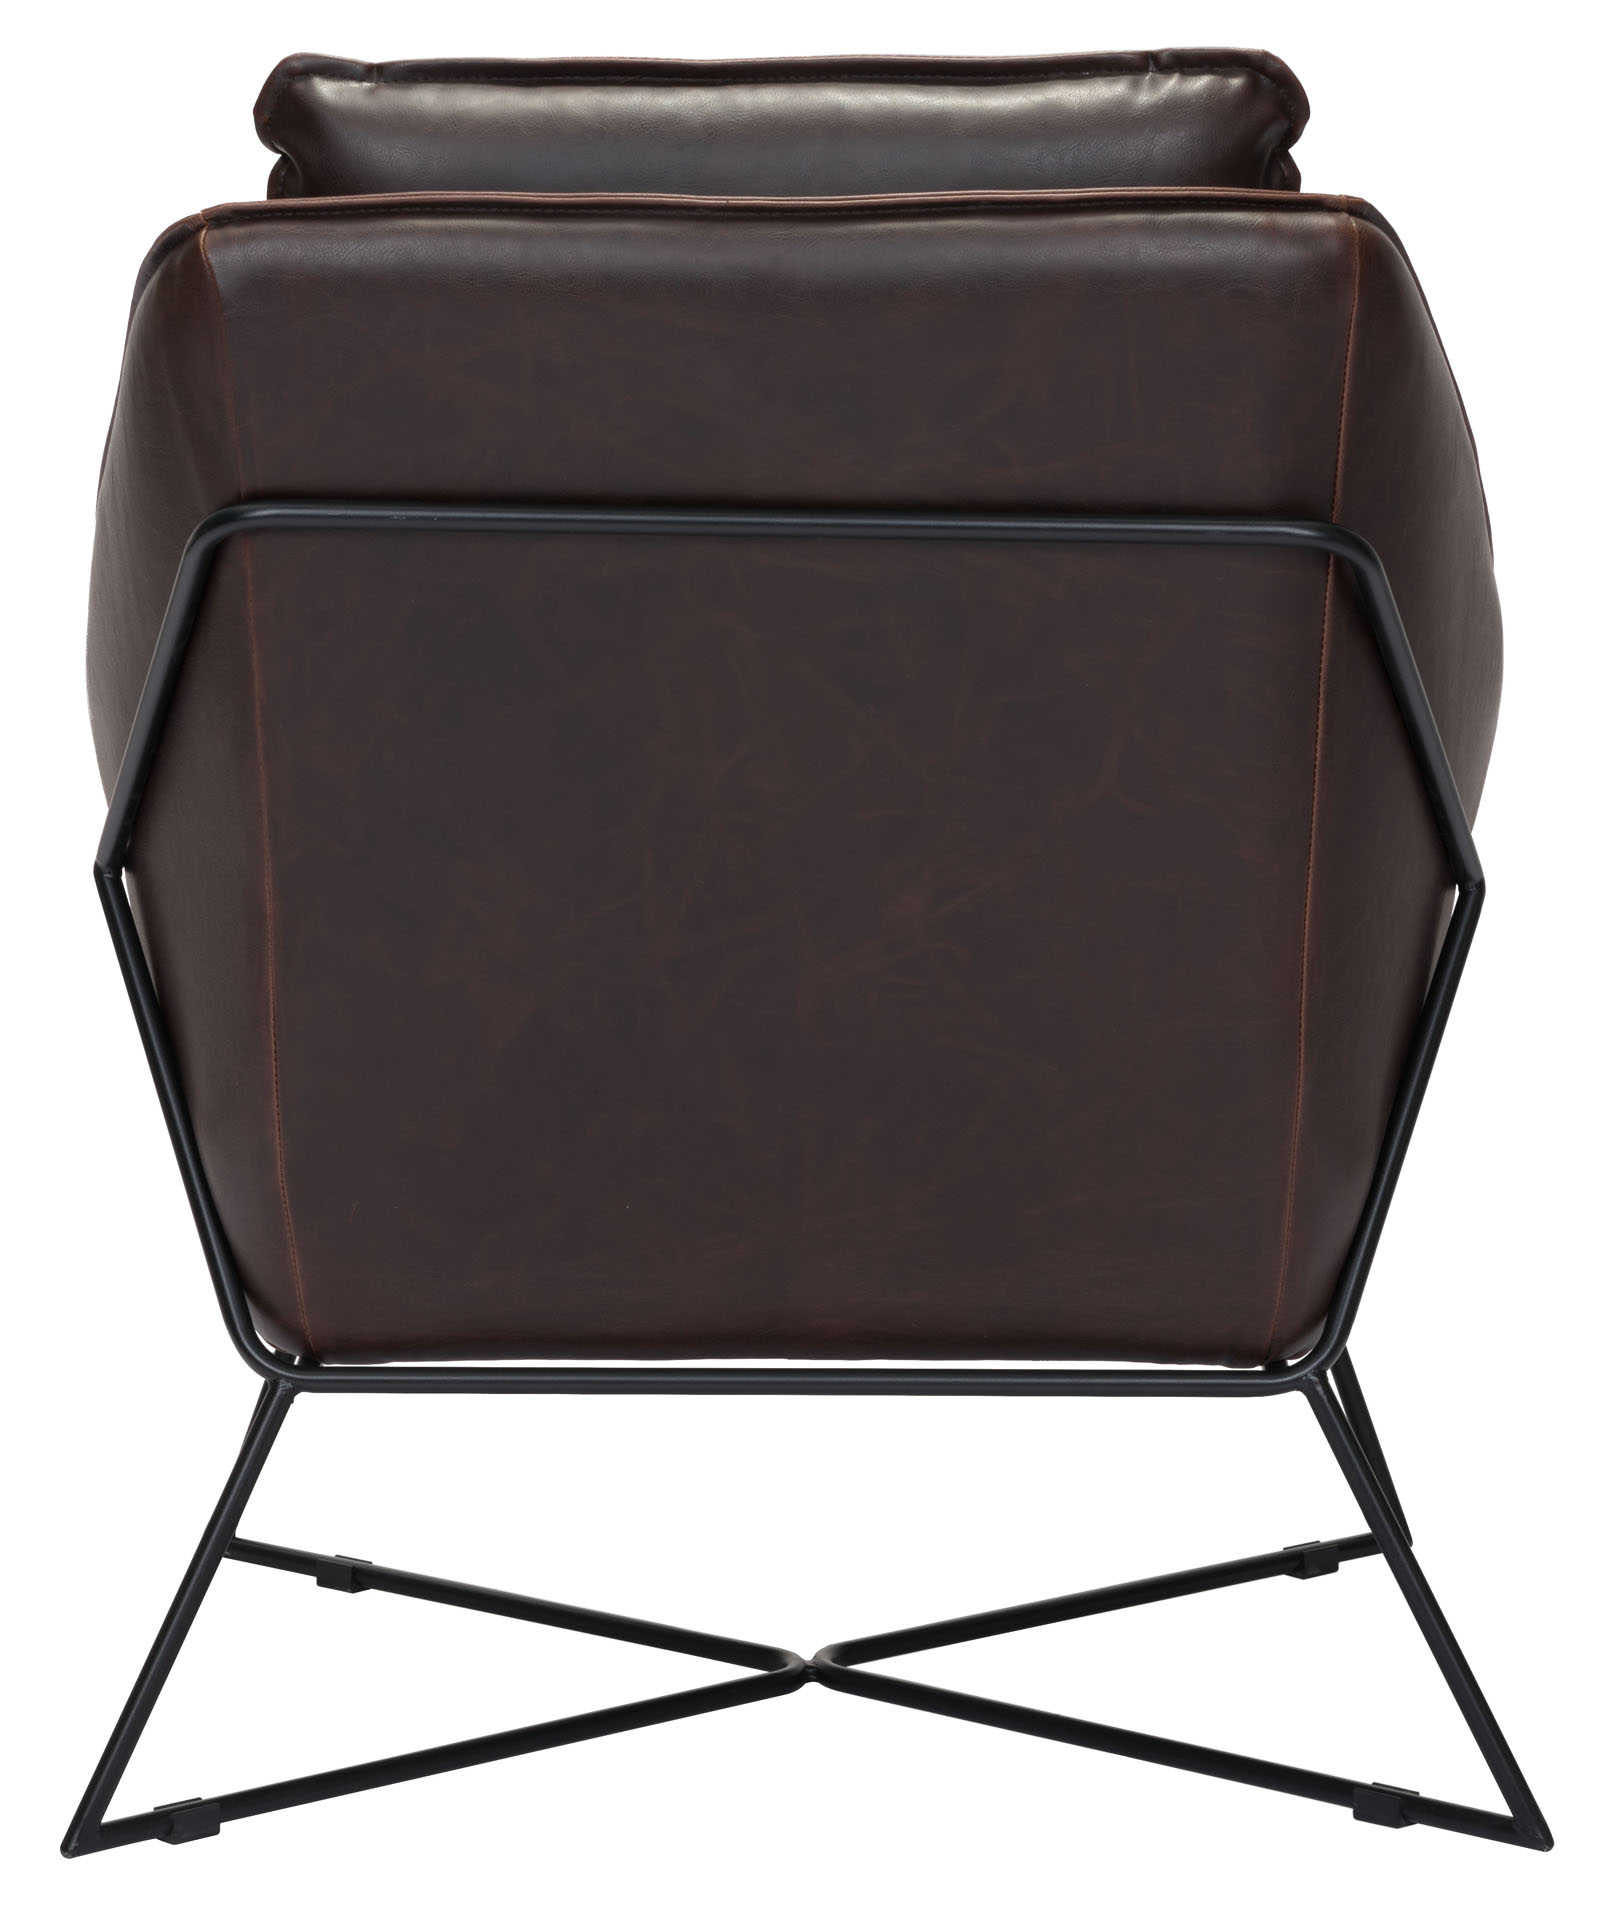 zuo lincoln lounge chair